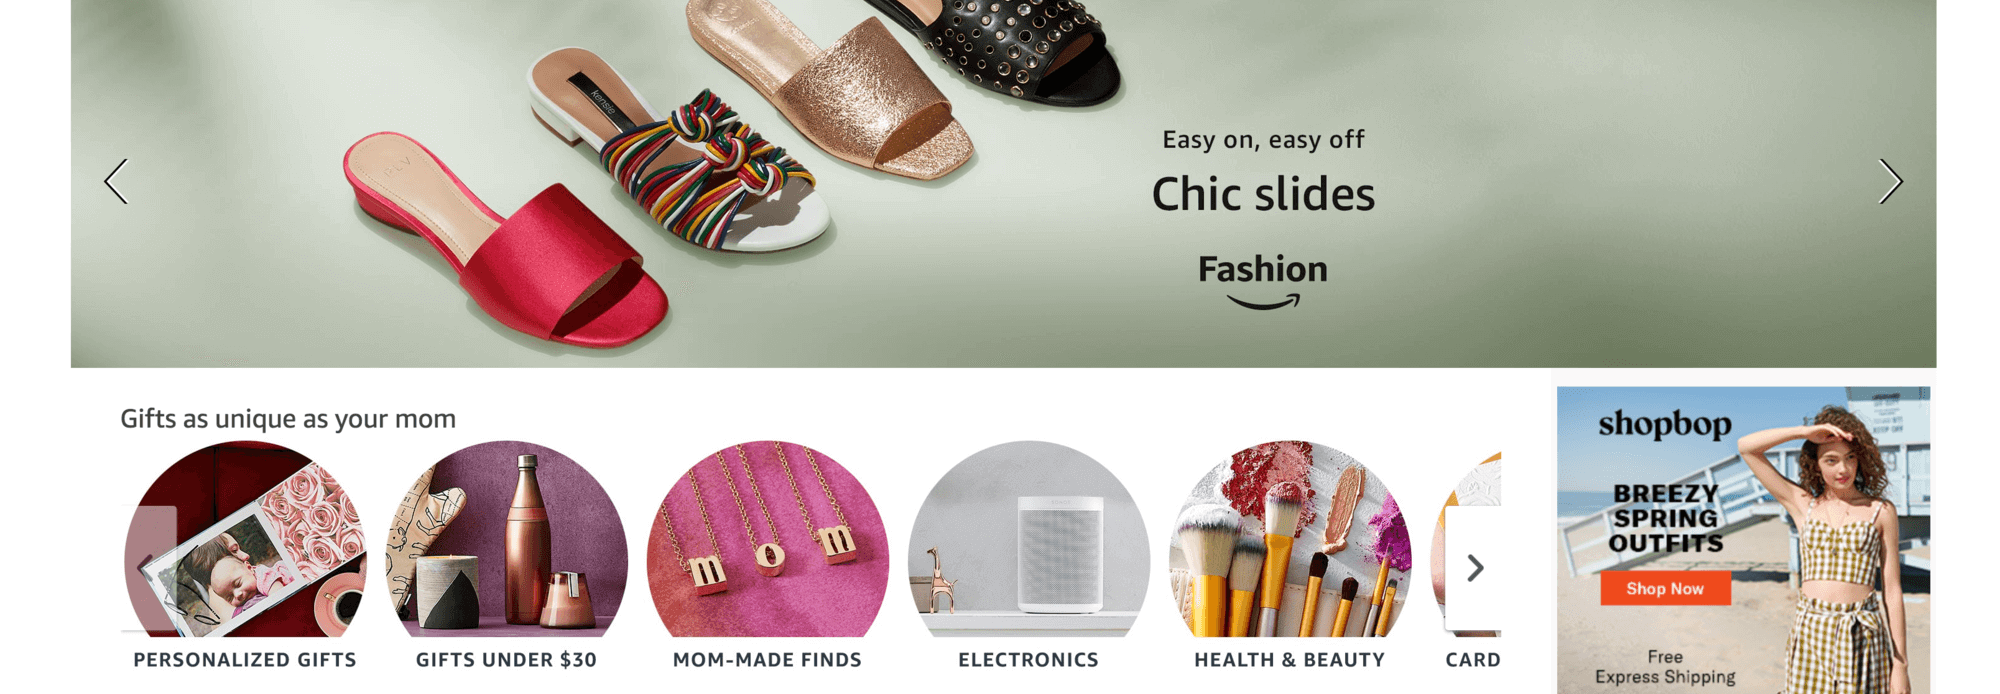 The Amazon home page.